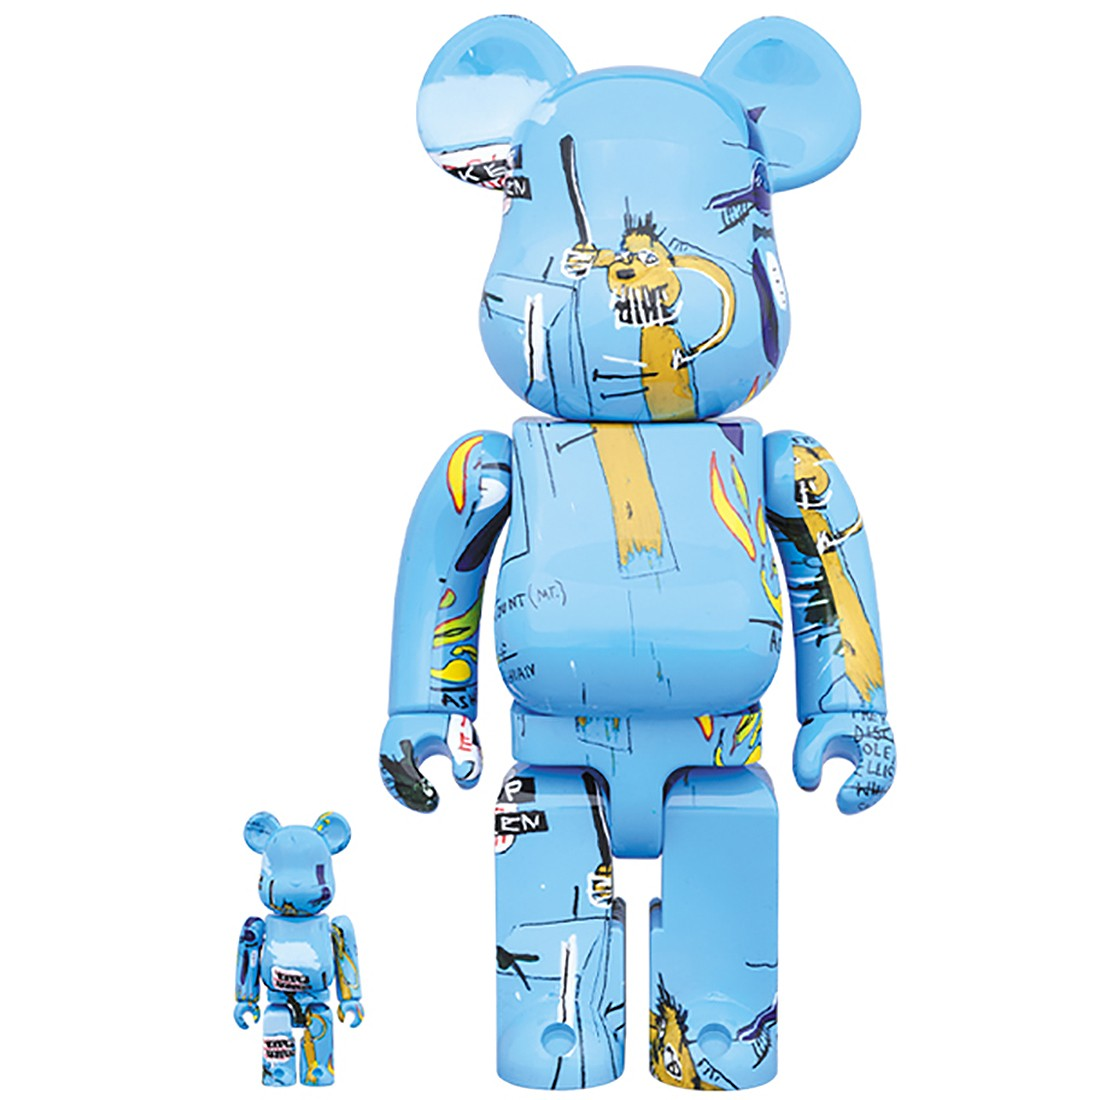 PREORDER - Medicom Jean-Michel Basquiat #4 100% 400% Bearbrick Figure Set (blue)